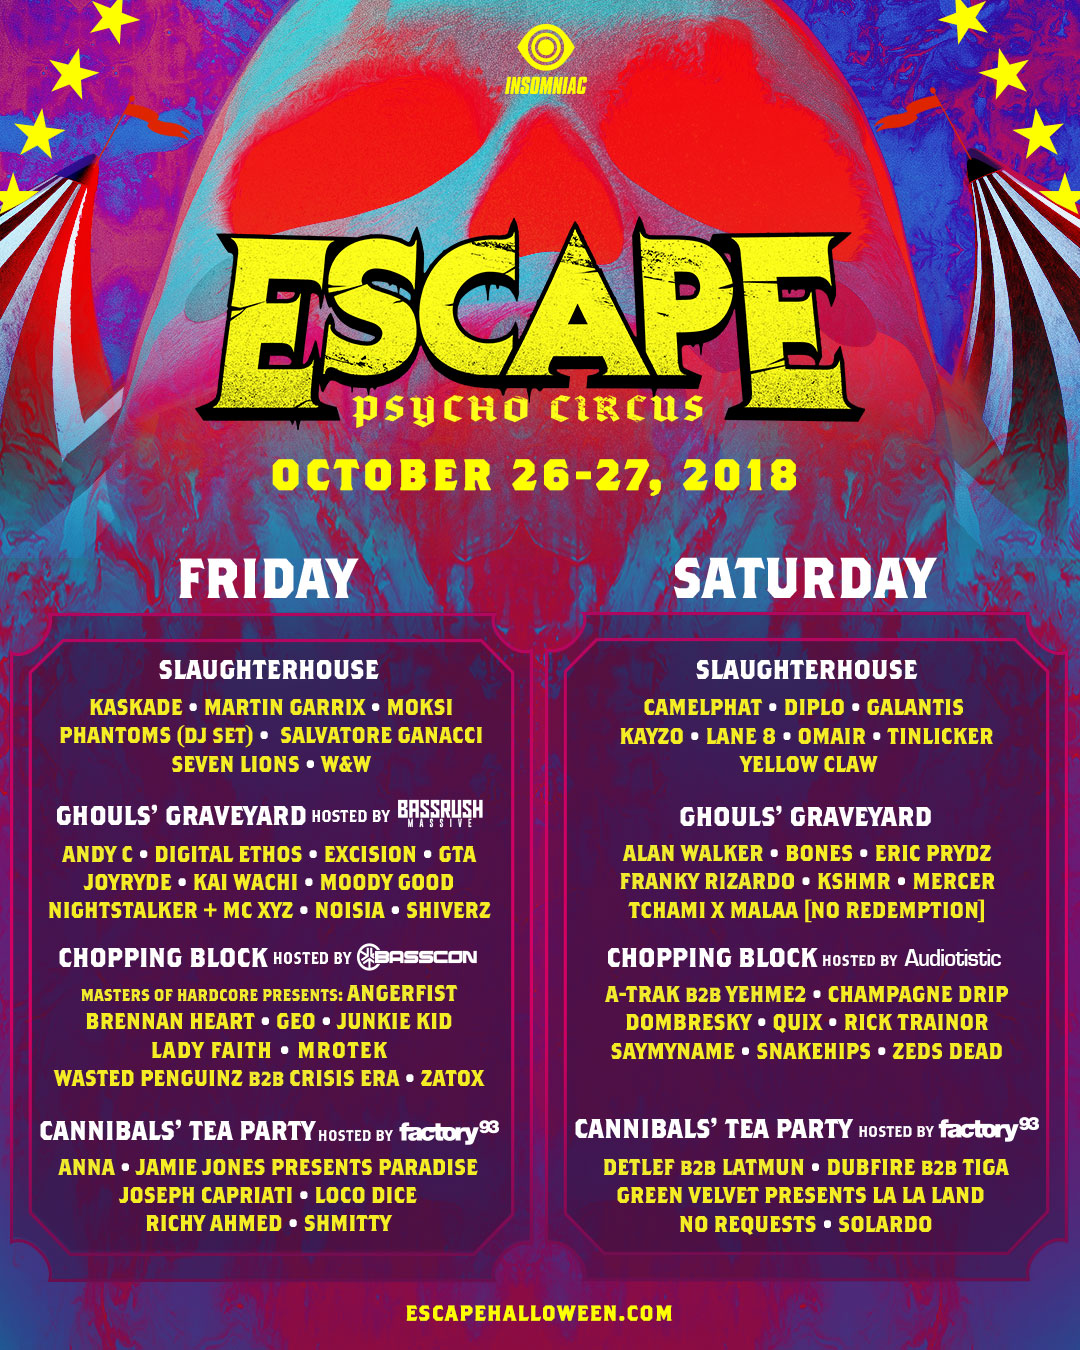 Escape lineup by stage flyer by day